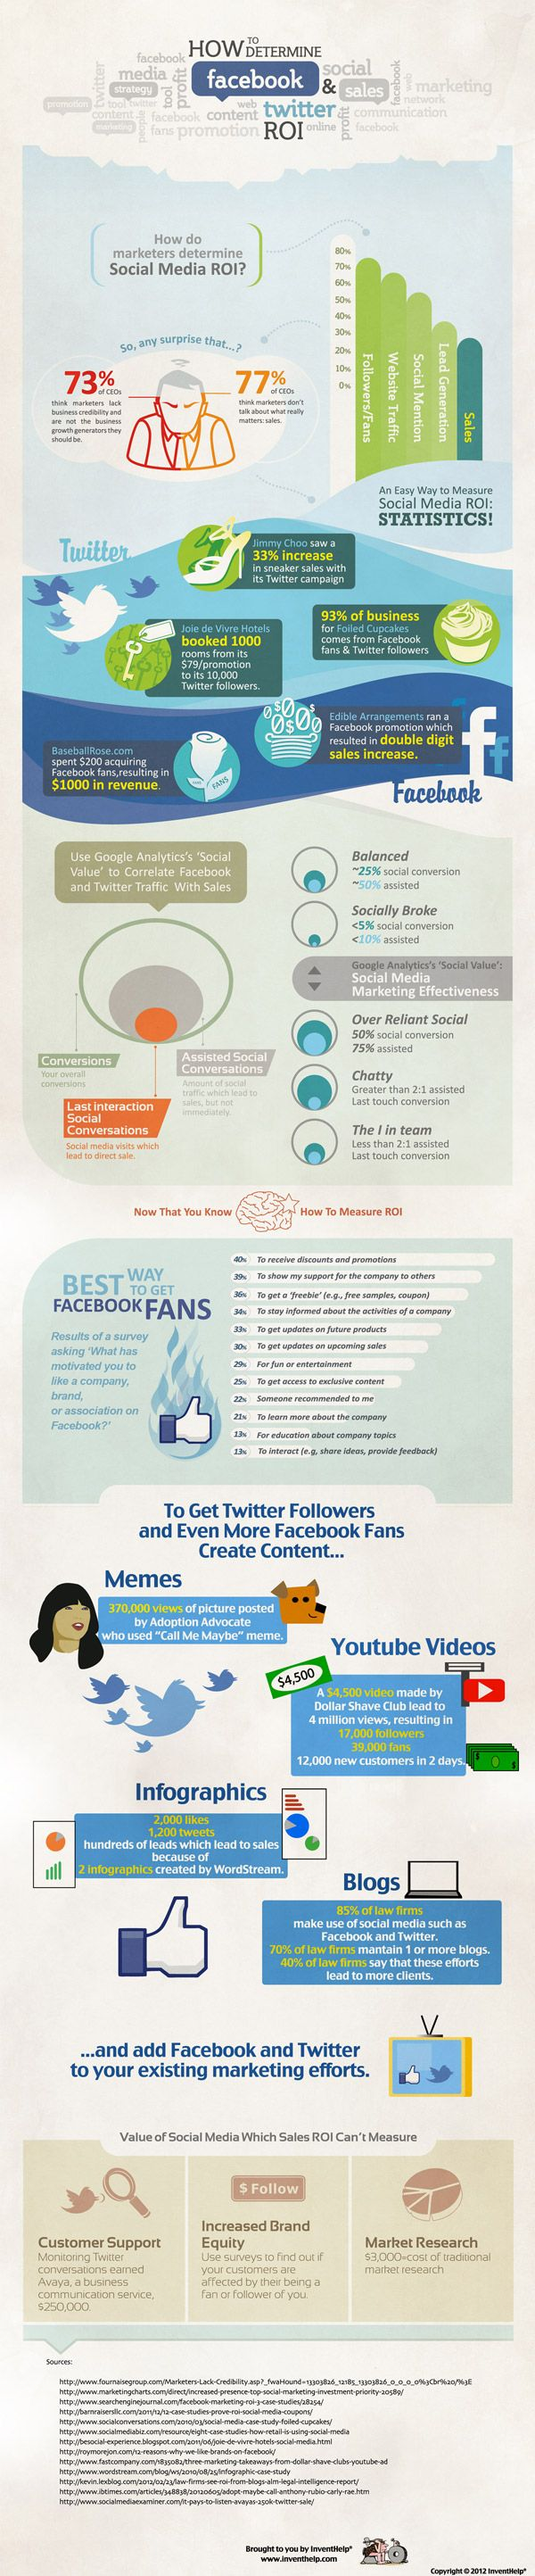 How to determine Facebook and Twitter ROI - how marketers determine return on investment on the two biggest social networks.